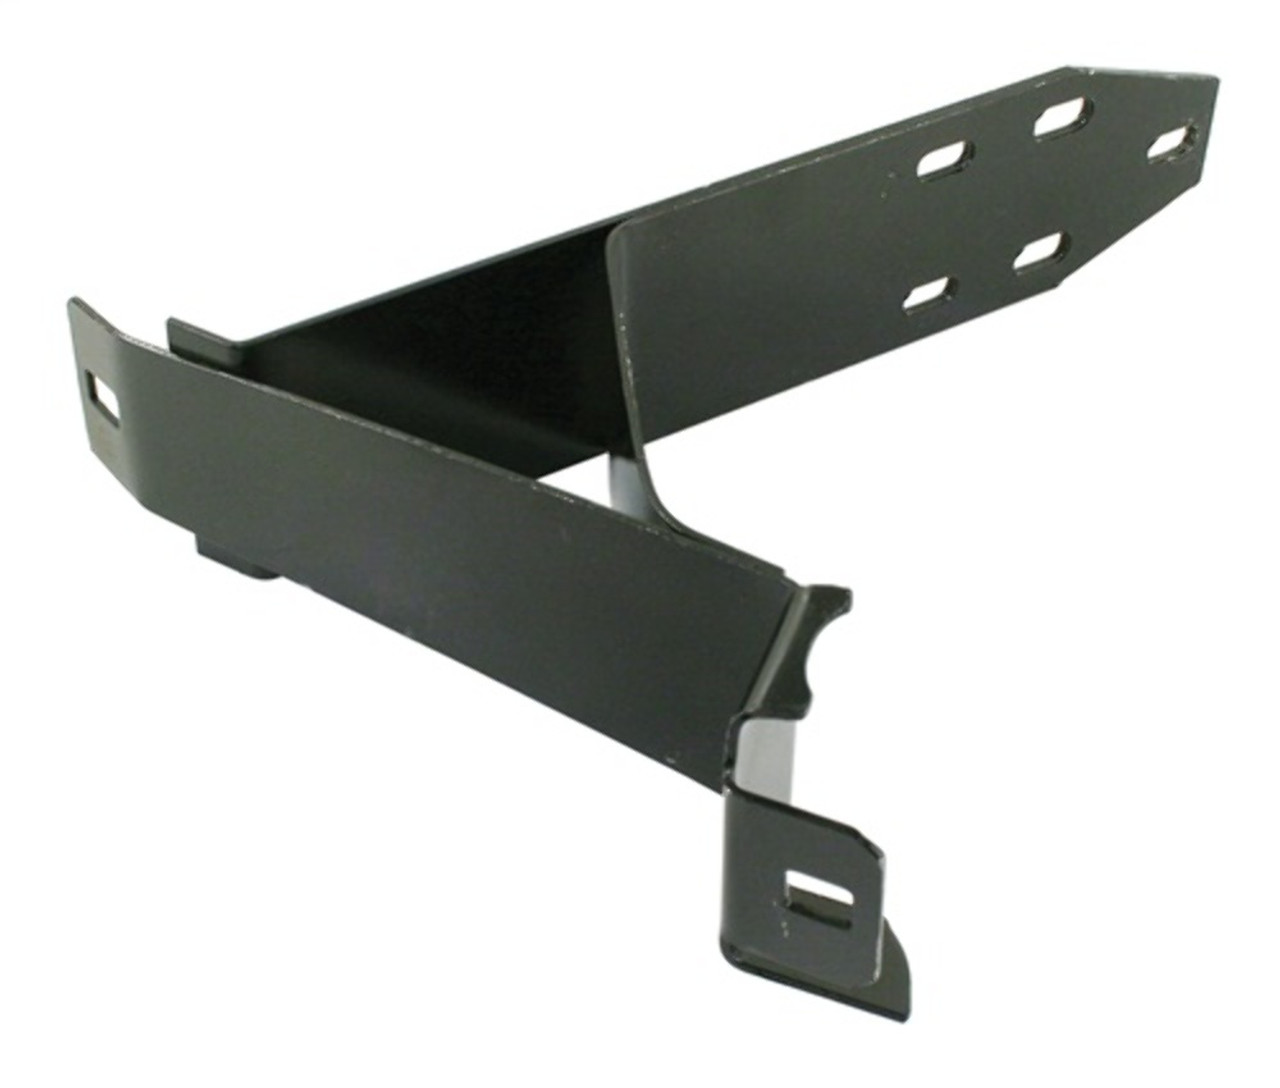 98-1009-0 BUMPER BRACKET, LEFT, FRONT, BUG, 68-73